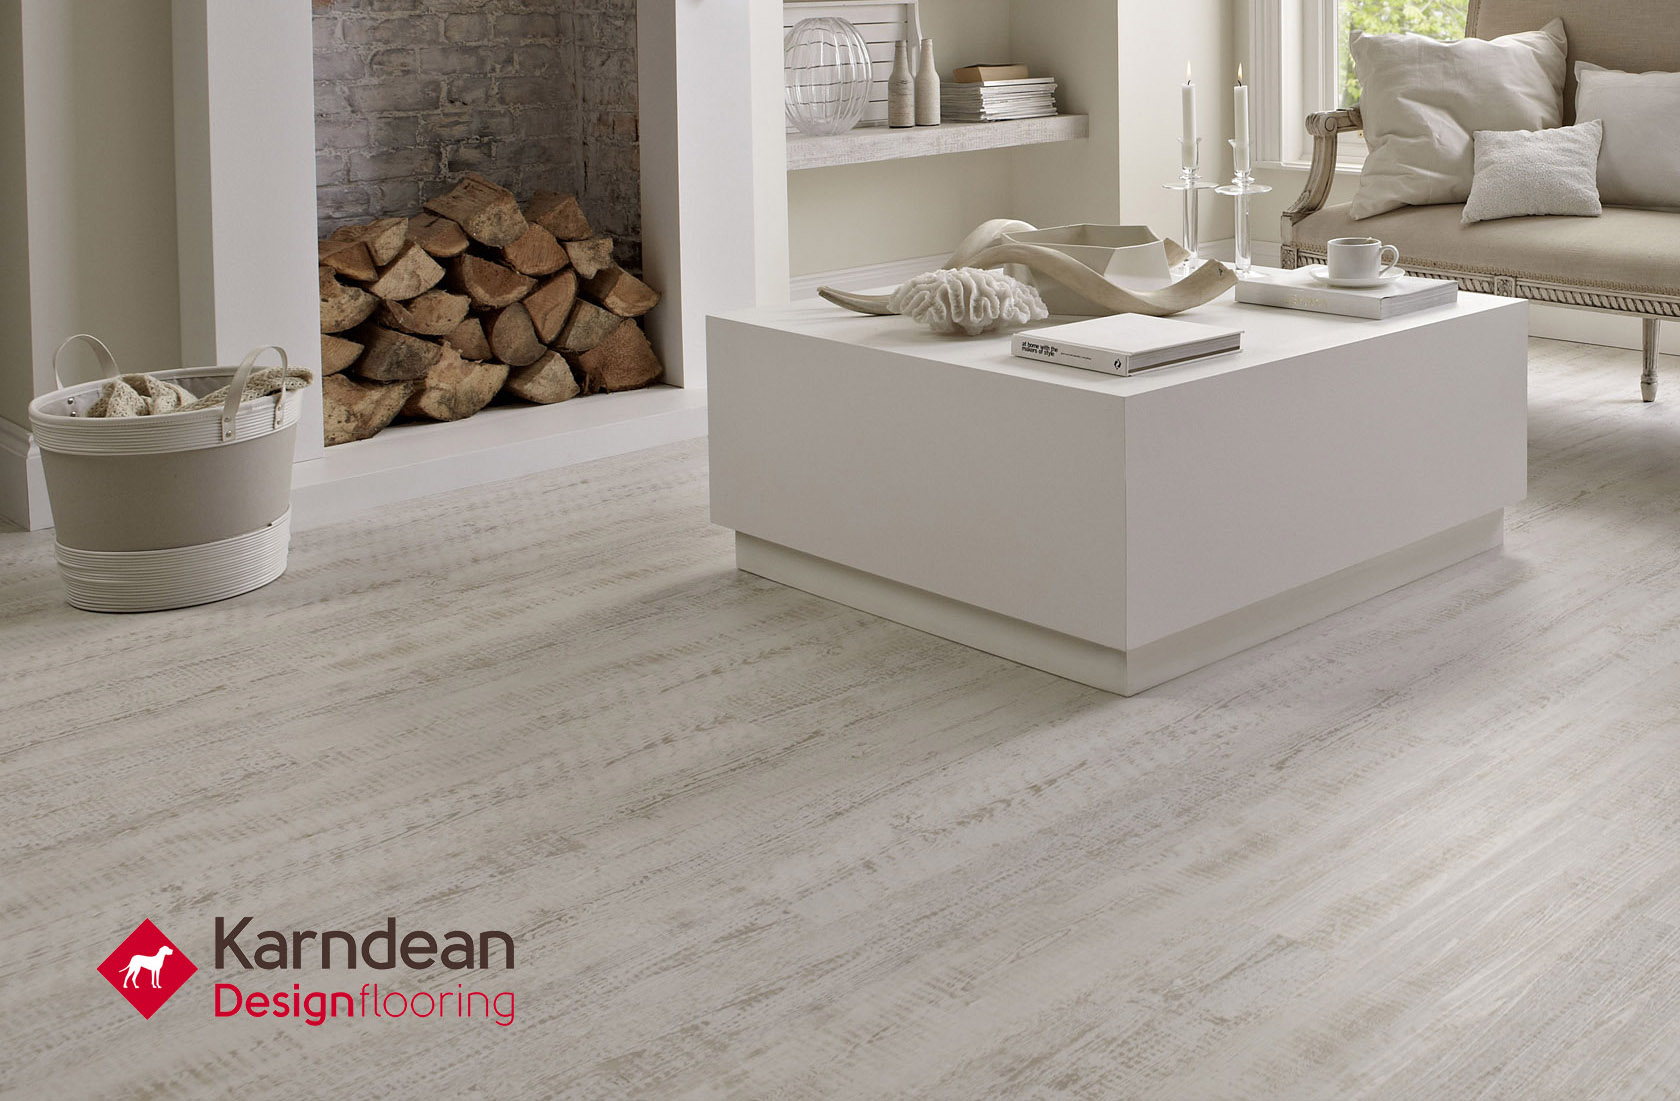 Karndean flooring is ideal in any room of the home for Carpet flooring